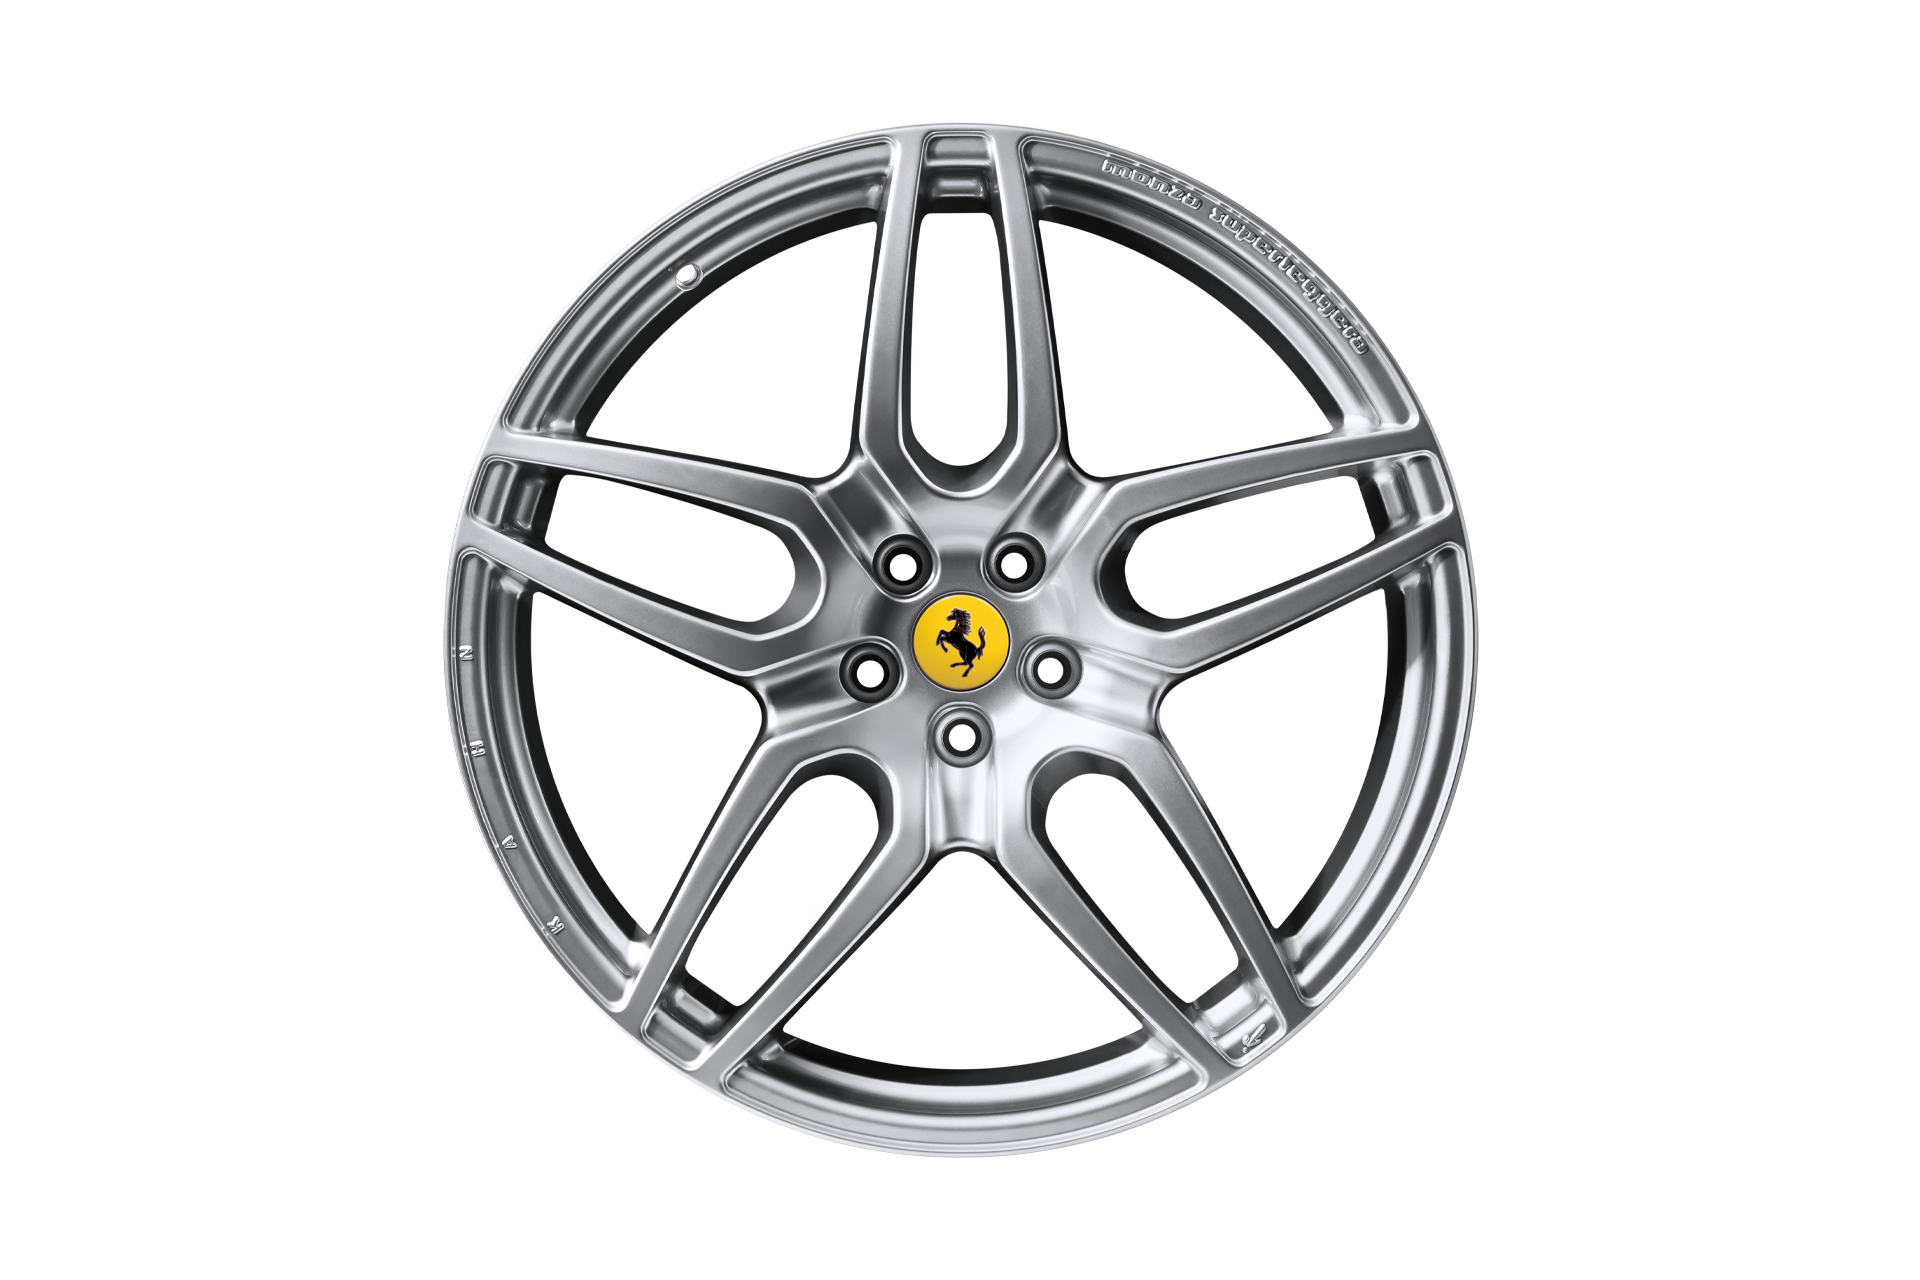 Ferrari 550 Monza Superleggera Light Alloy Wheels by Kahn - Image 4103